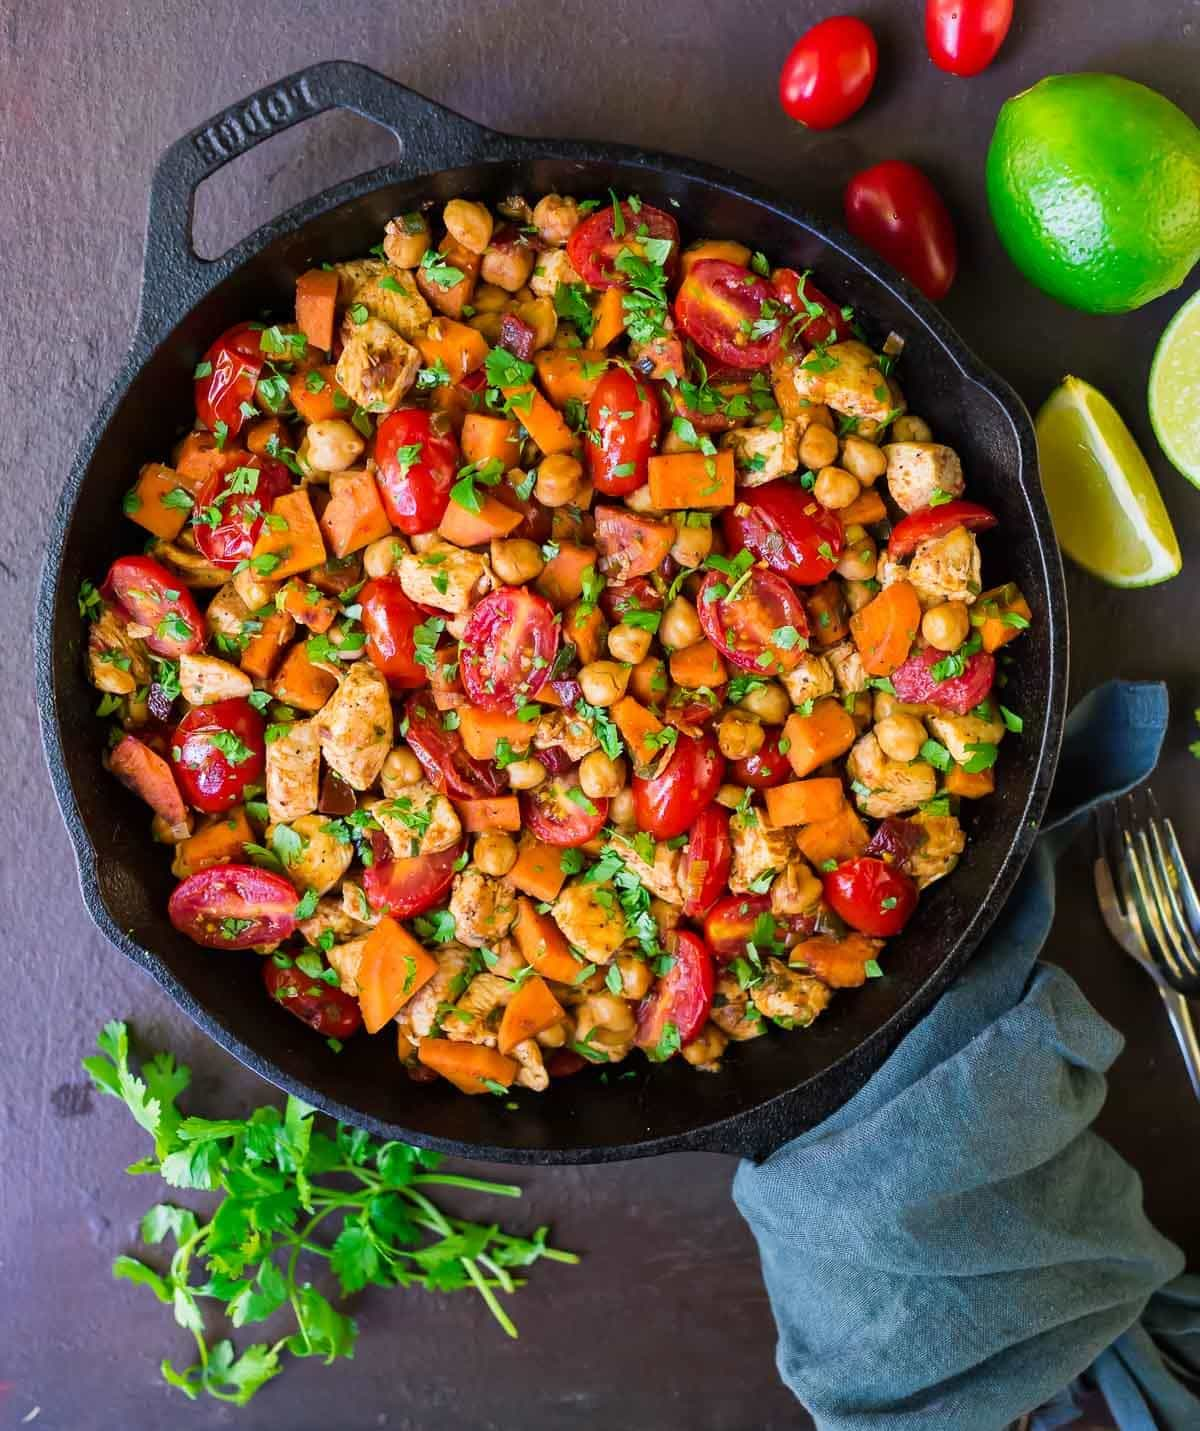 Chipotle Chicken Skillet with Sweet Potatoes, Tomatoes, and Chickpeas. FLAVORFUL, packed with healthy protein and fiber, and everything cooks in one pan! Recipe at wellplated.com | @wellplated